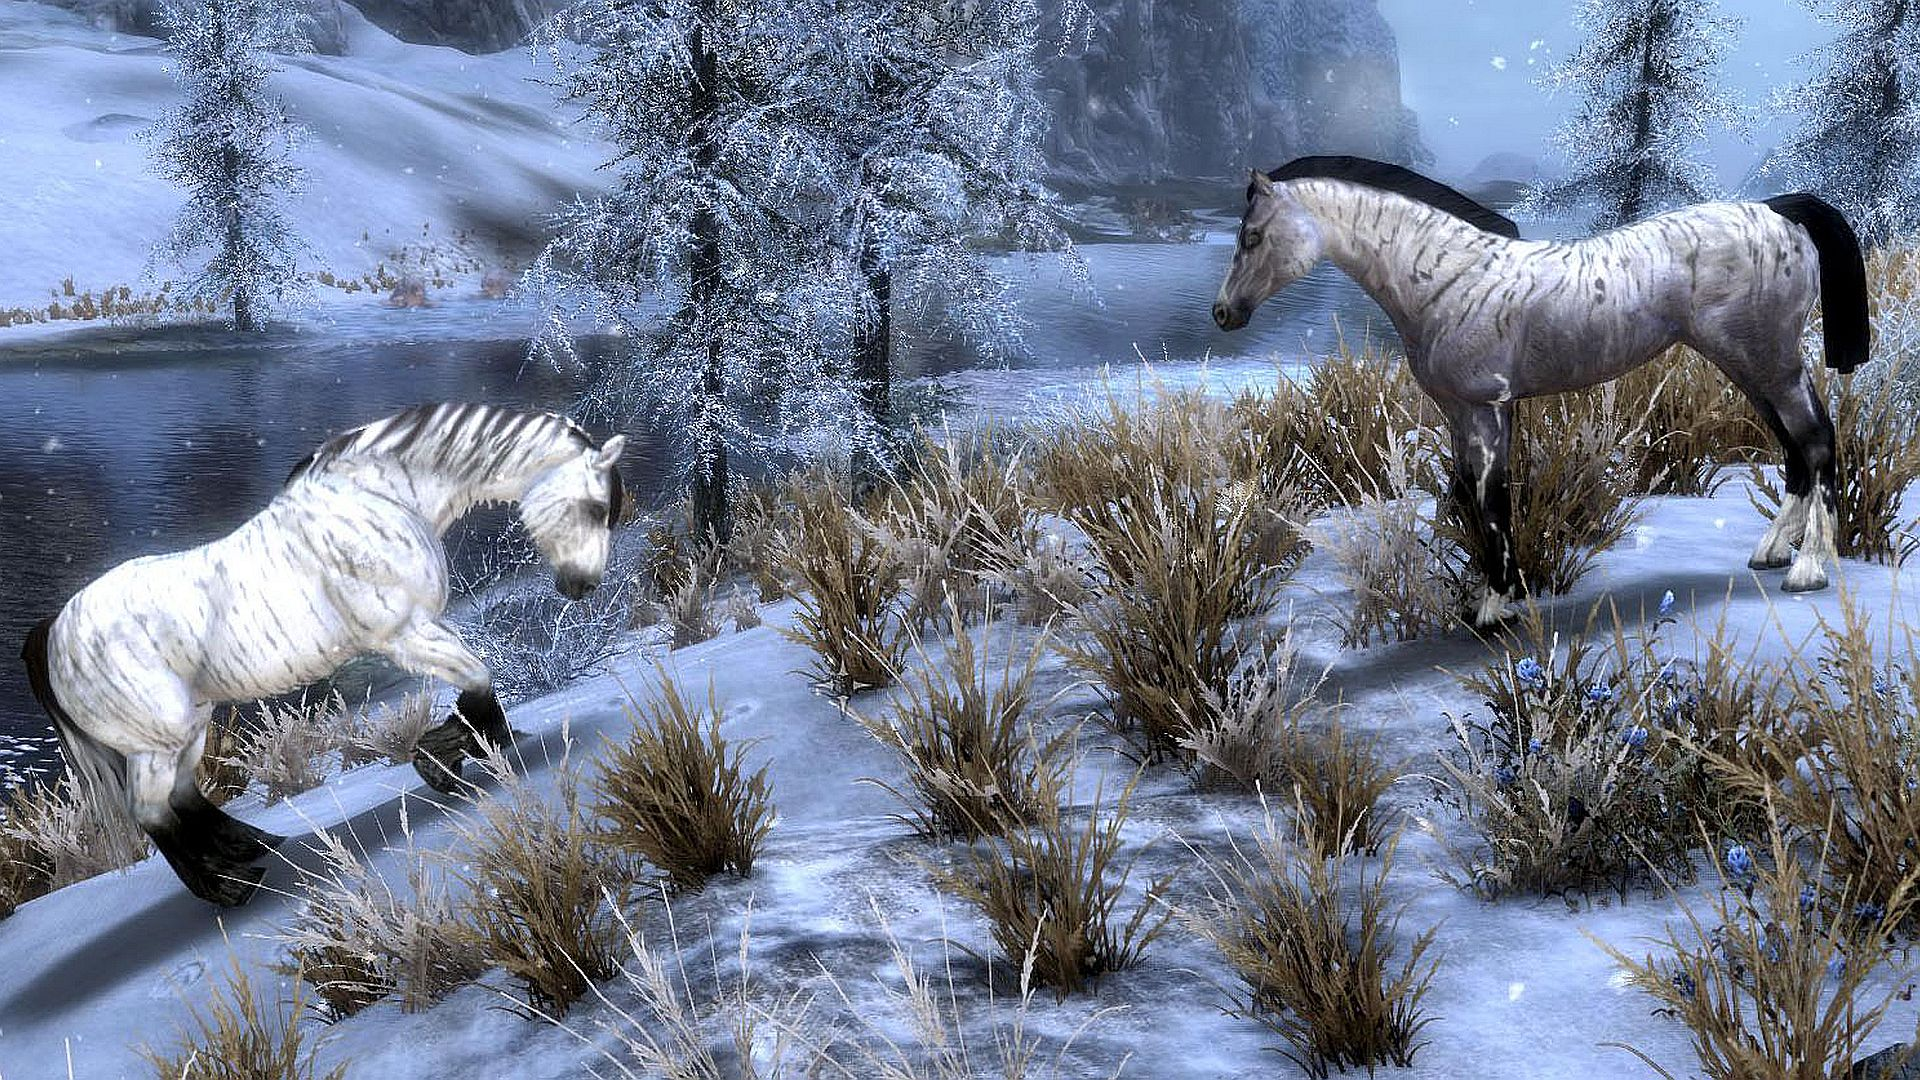 Meet the people making Skyrim mods to improve Tamriel's